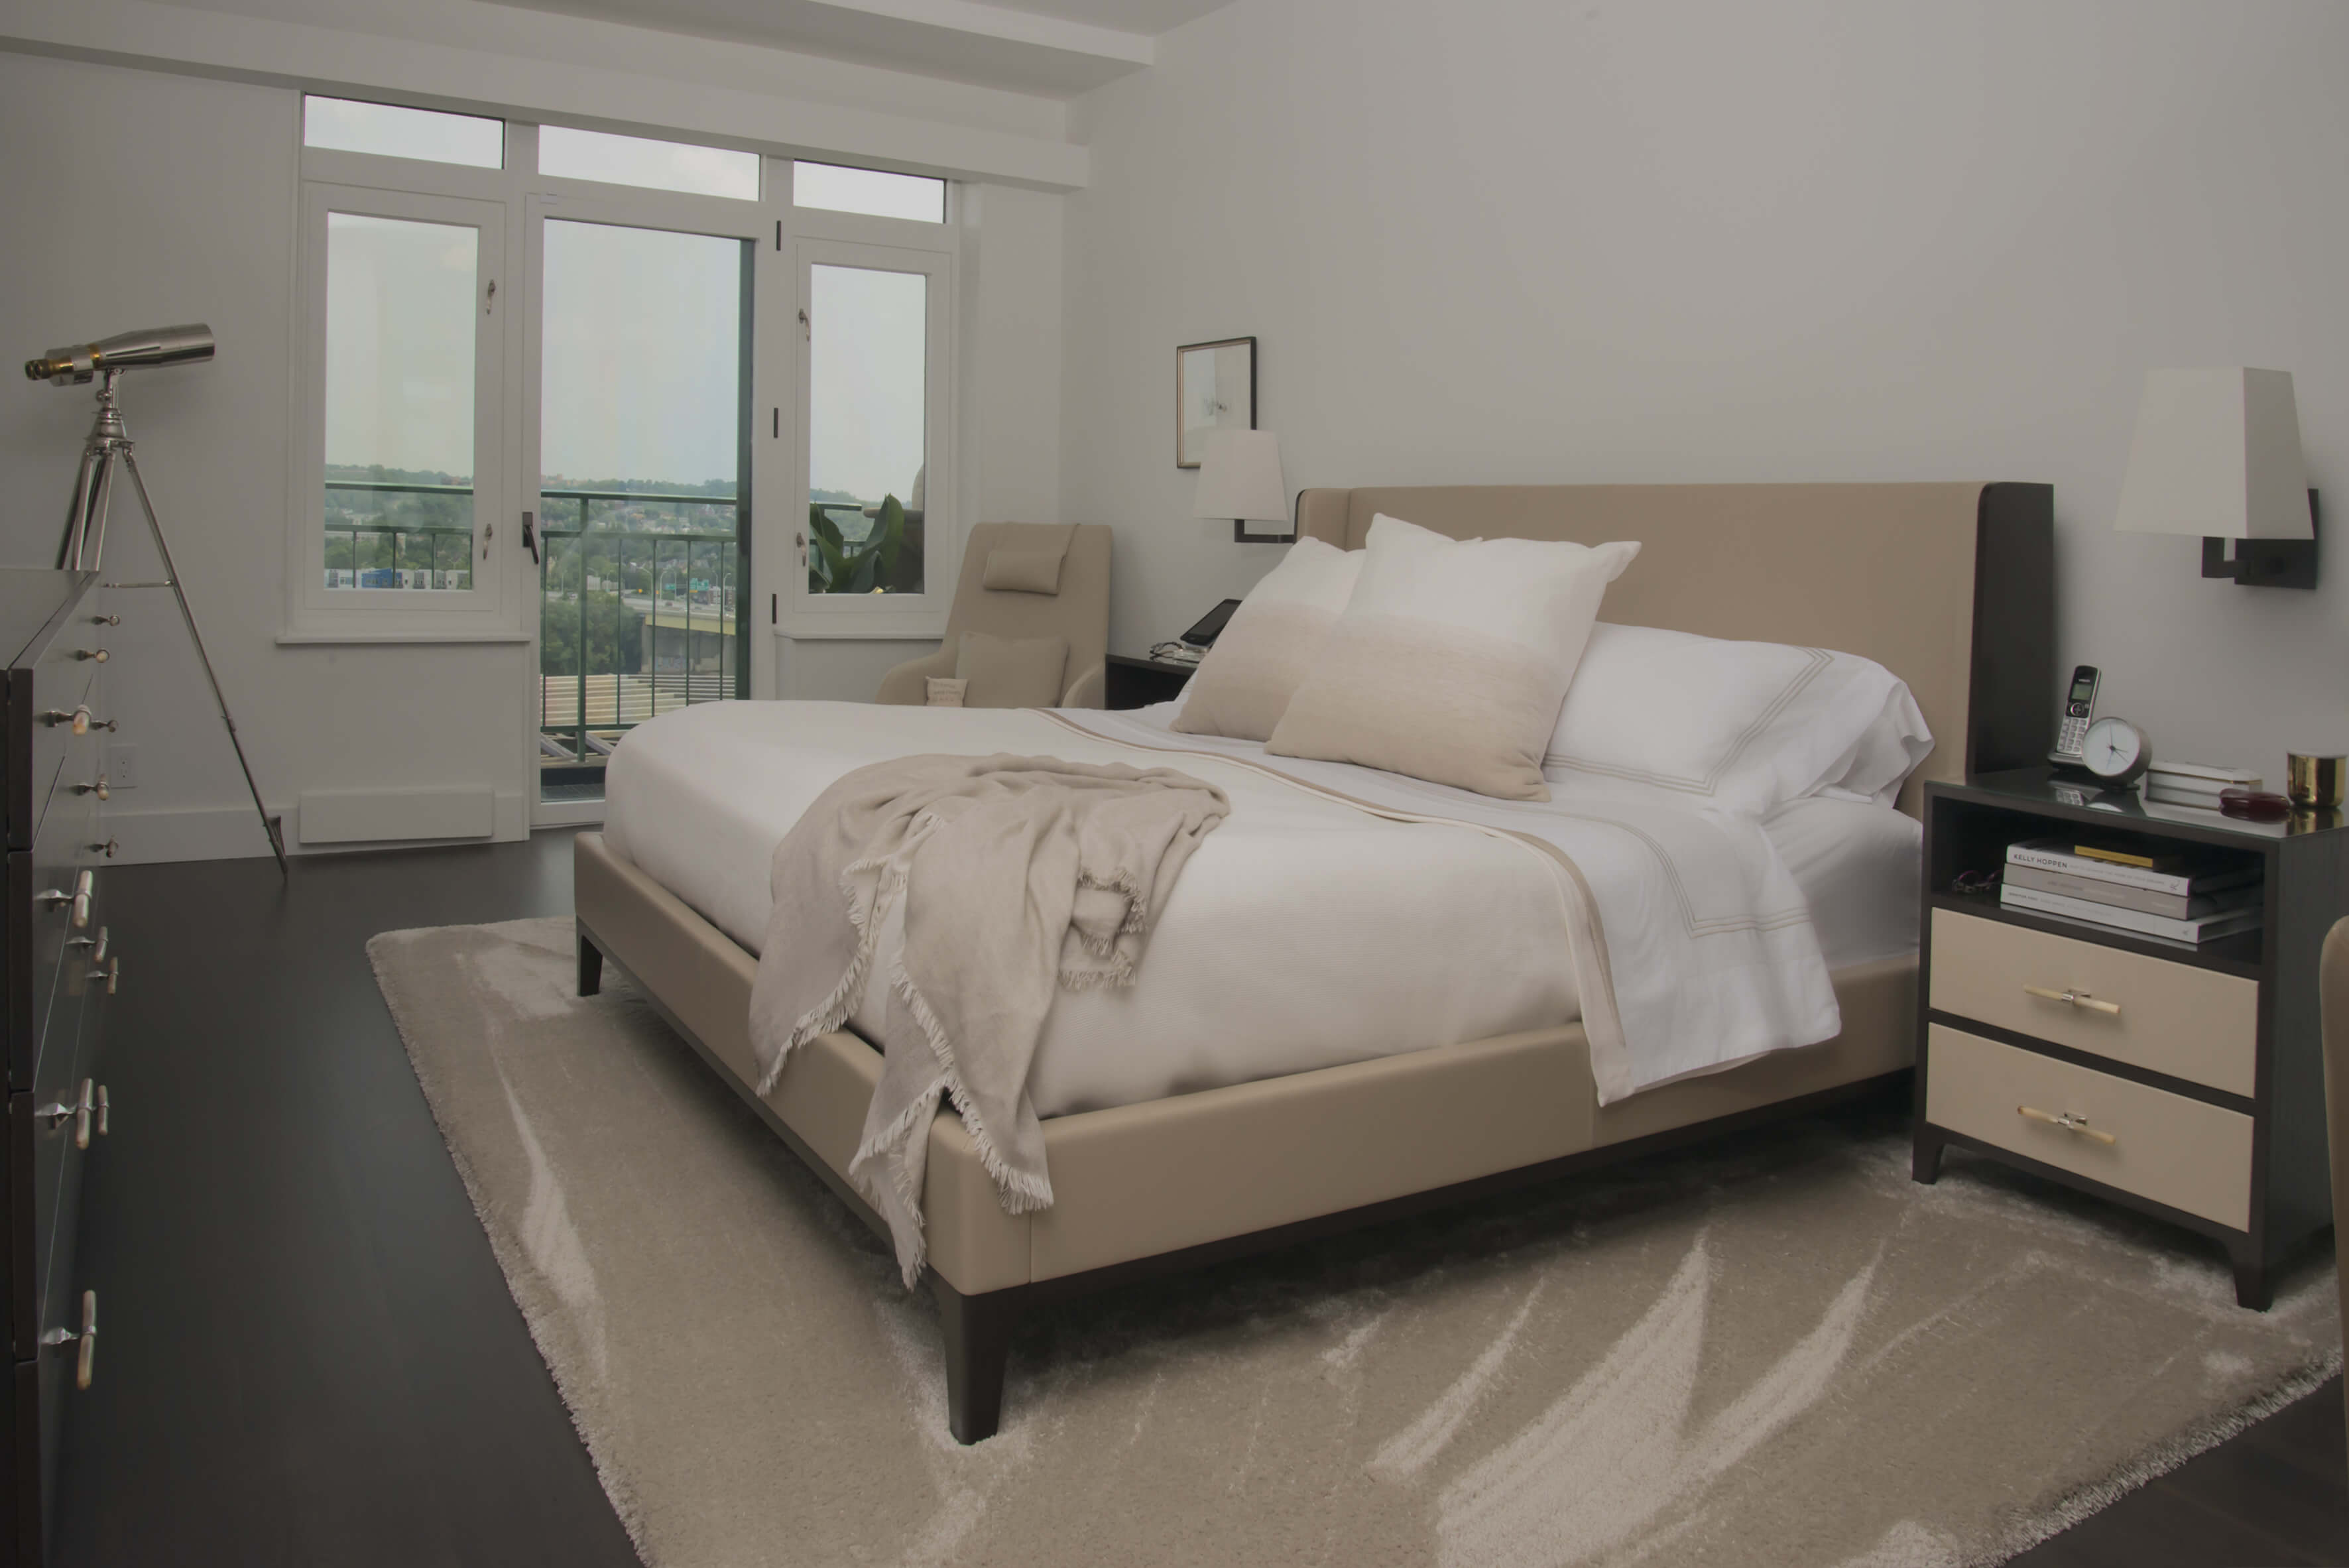 Sophisticated and cozy modern bedroom with warm tones designed by interior designer, RM Interiors.